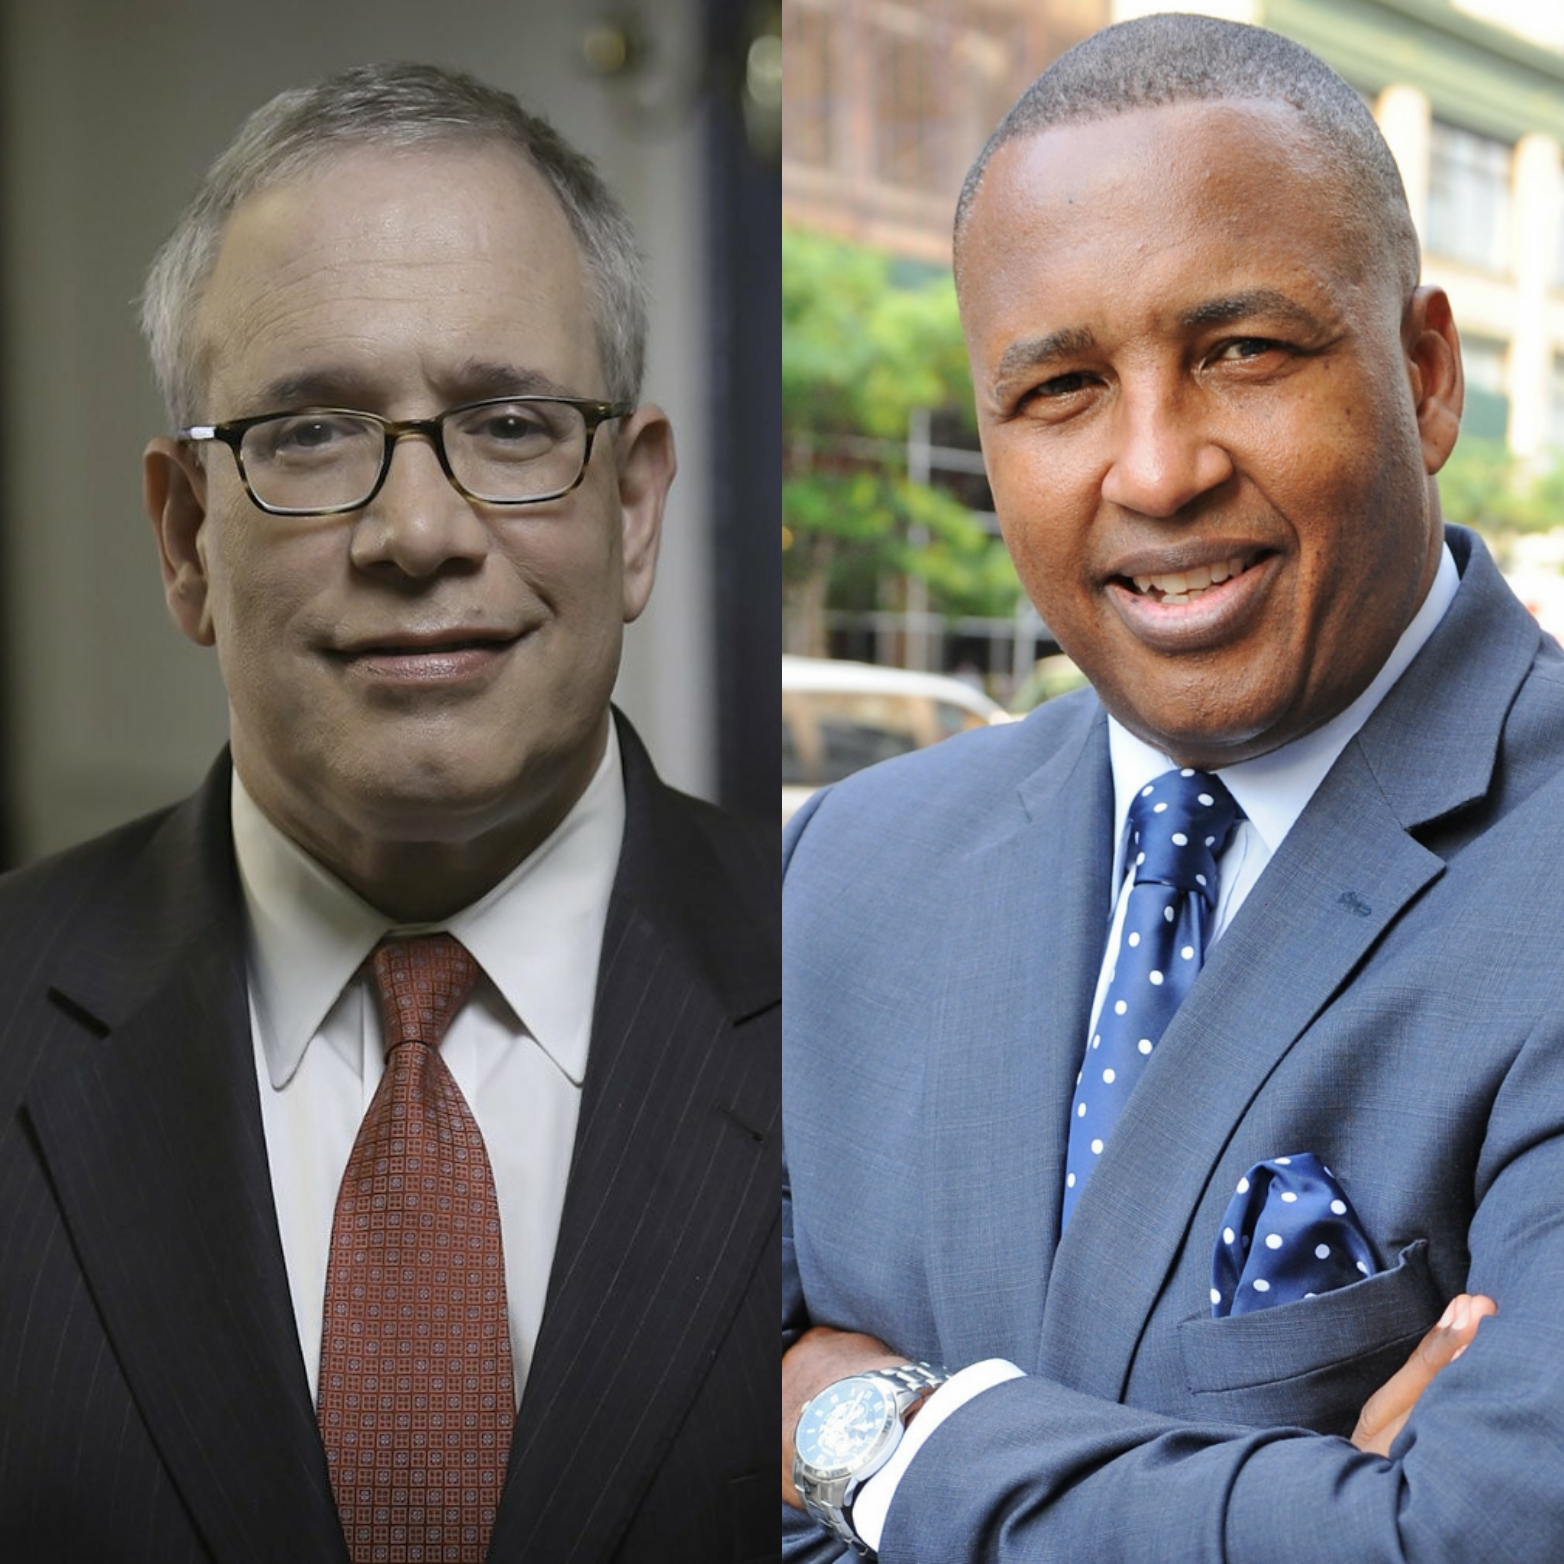 COMPTROLLER DEBATE FOR NYC GENERAL ELECTION, 10/17